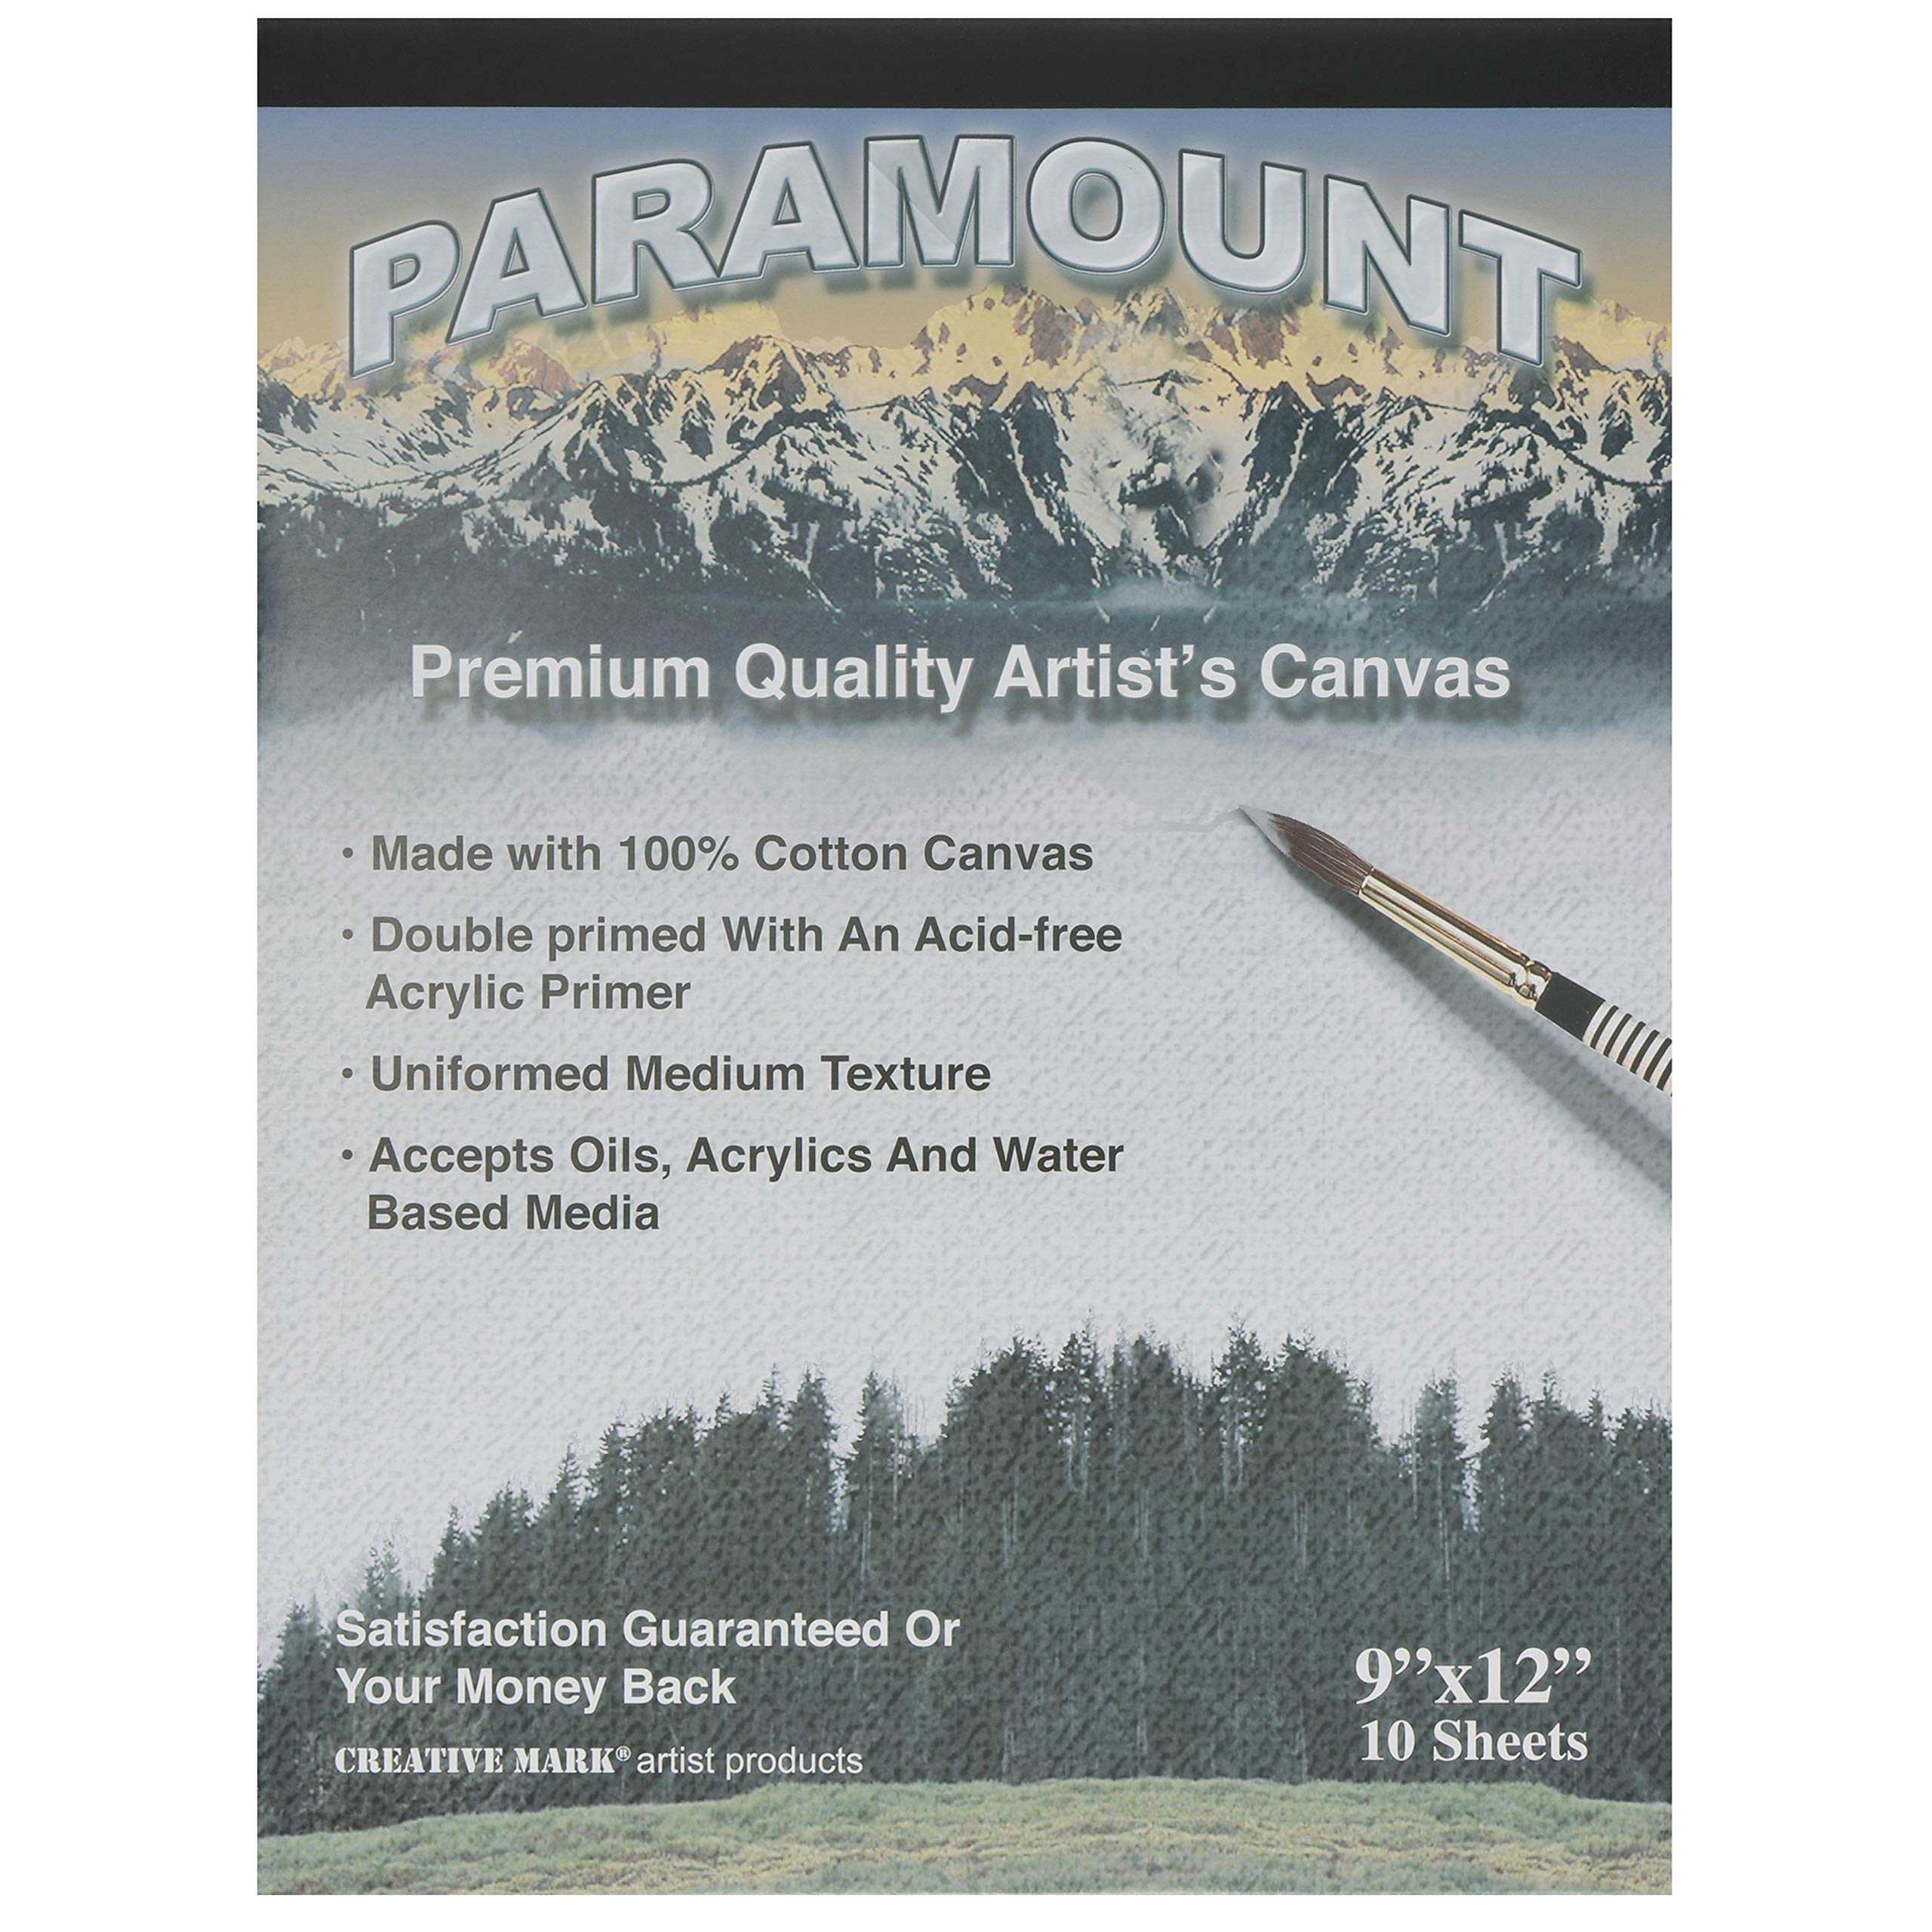 Paramount Artist Double Primed 100% Cotton Canvas Pad - Single Pad (10 Canvas Sheets) - 9'' x 12'' by Paramount